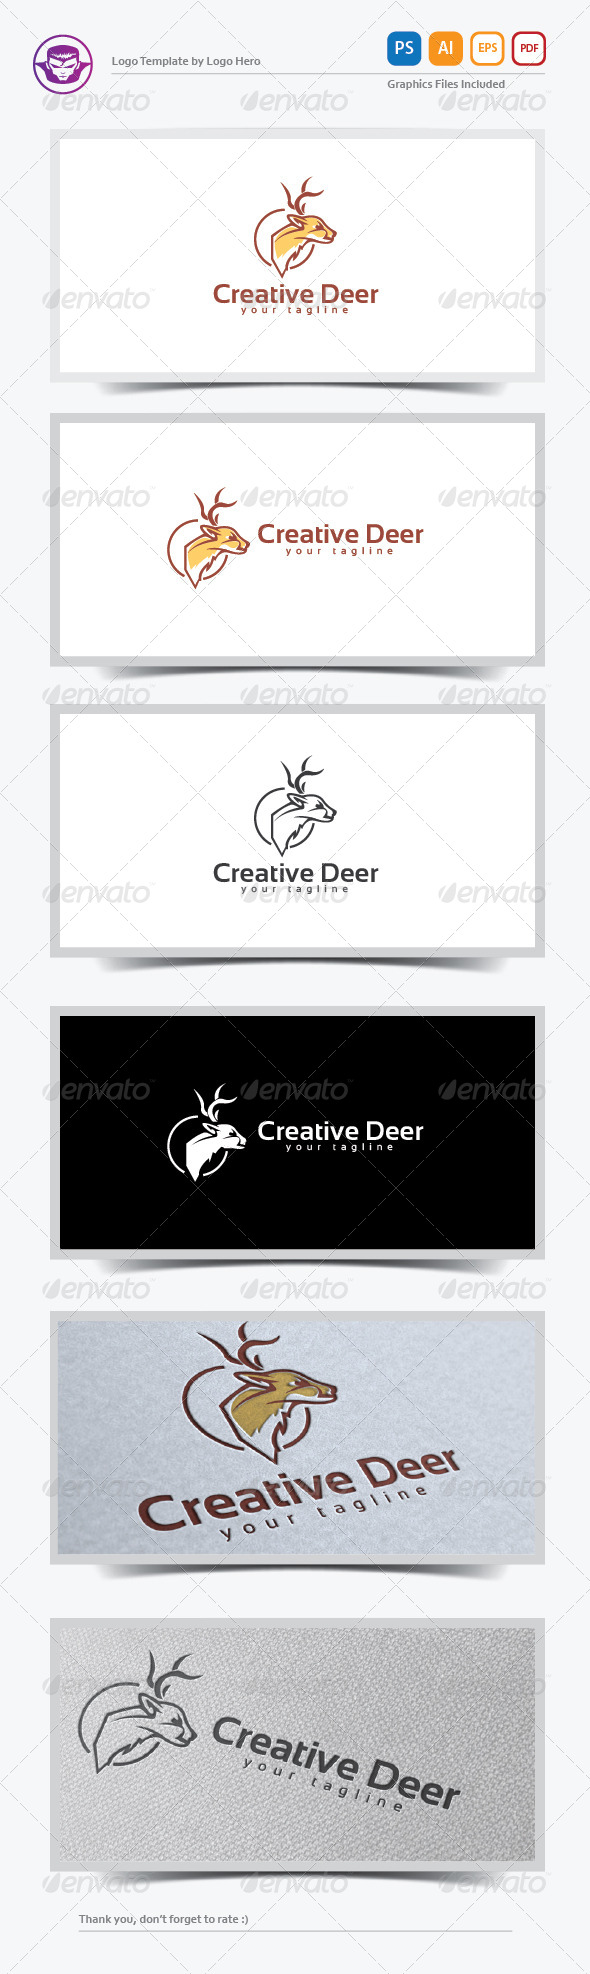 GraphicRiver Creative Deer Logo Template 8234165